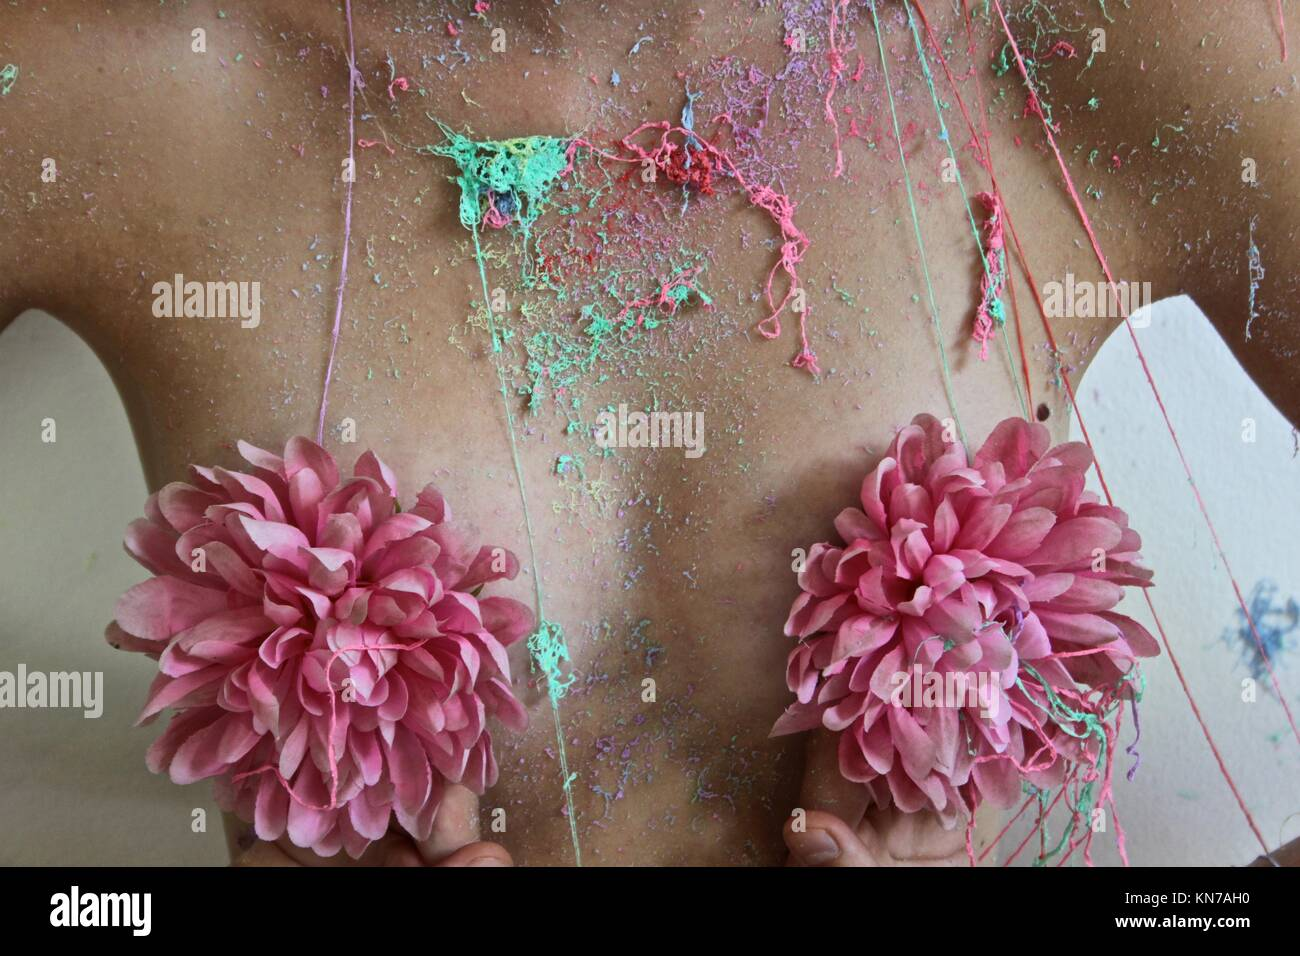 Covered her body with colorful party spray - Stock Image